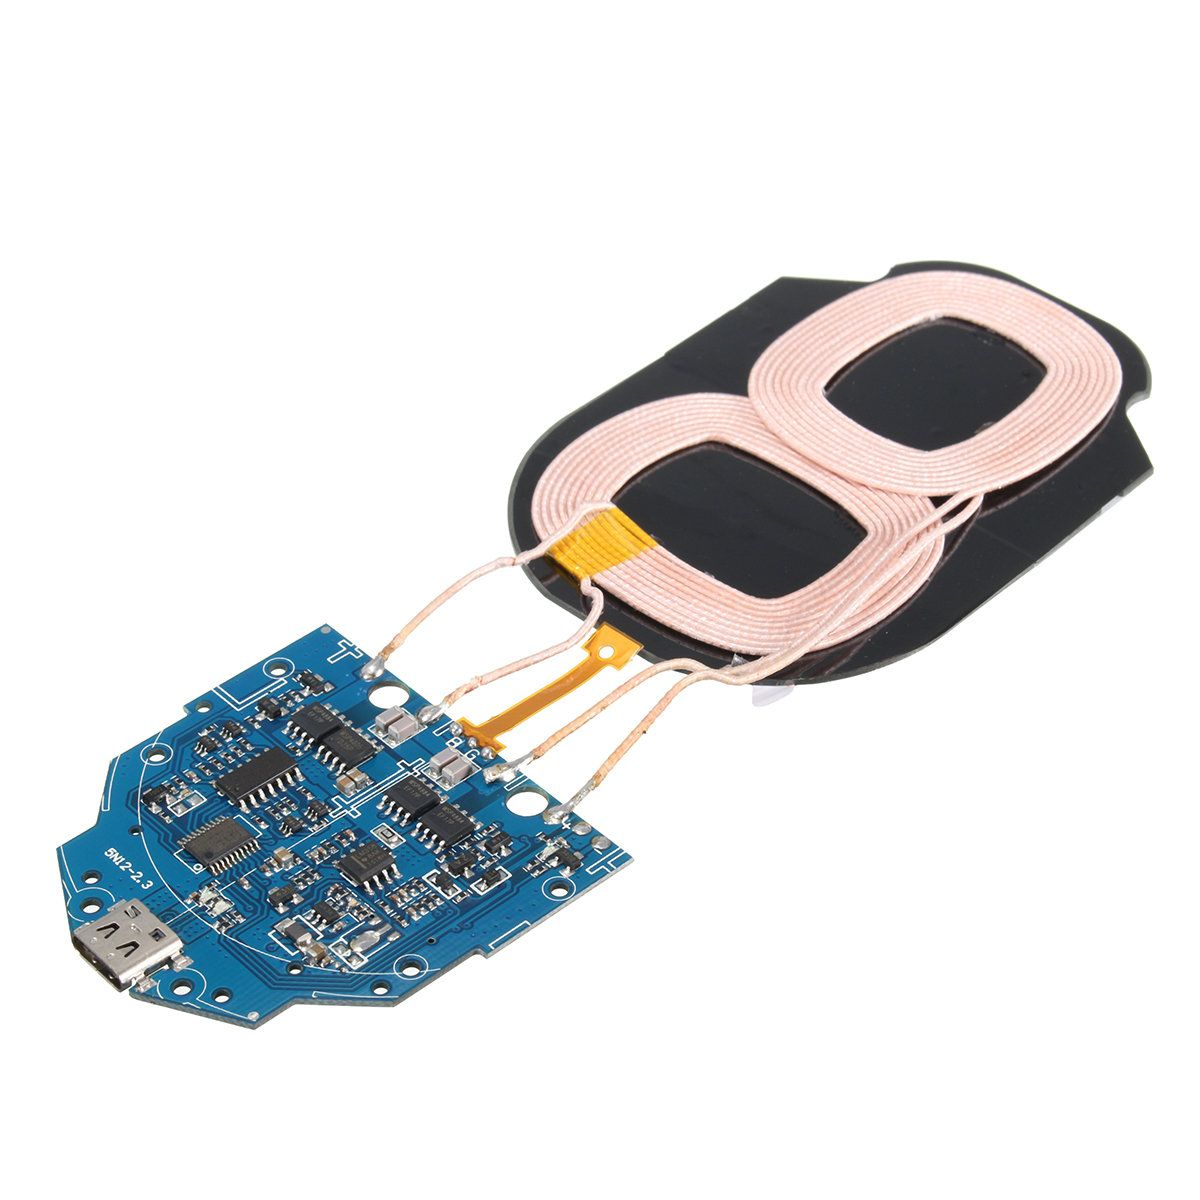 9v 1 2a Type C Port Qi Wireless Charger Pcba Circuit Board 2 Coil Hacked Circuits By 9volts Charging